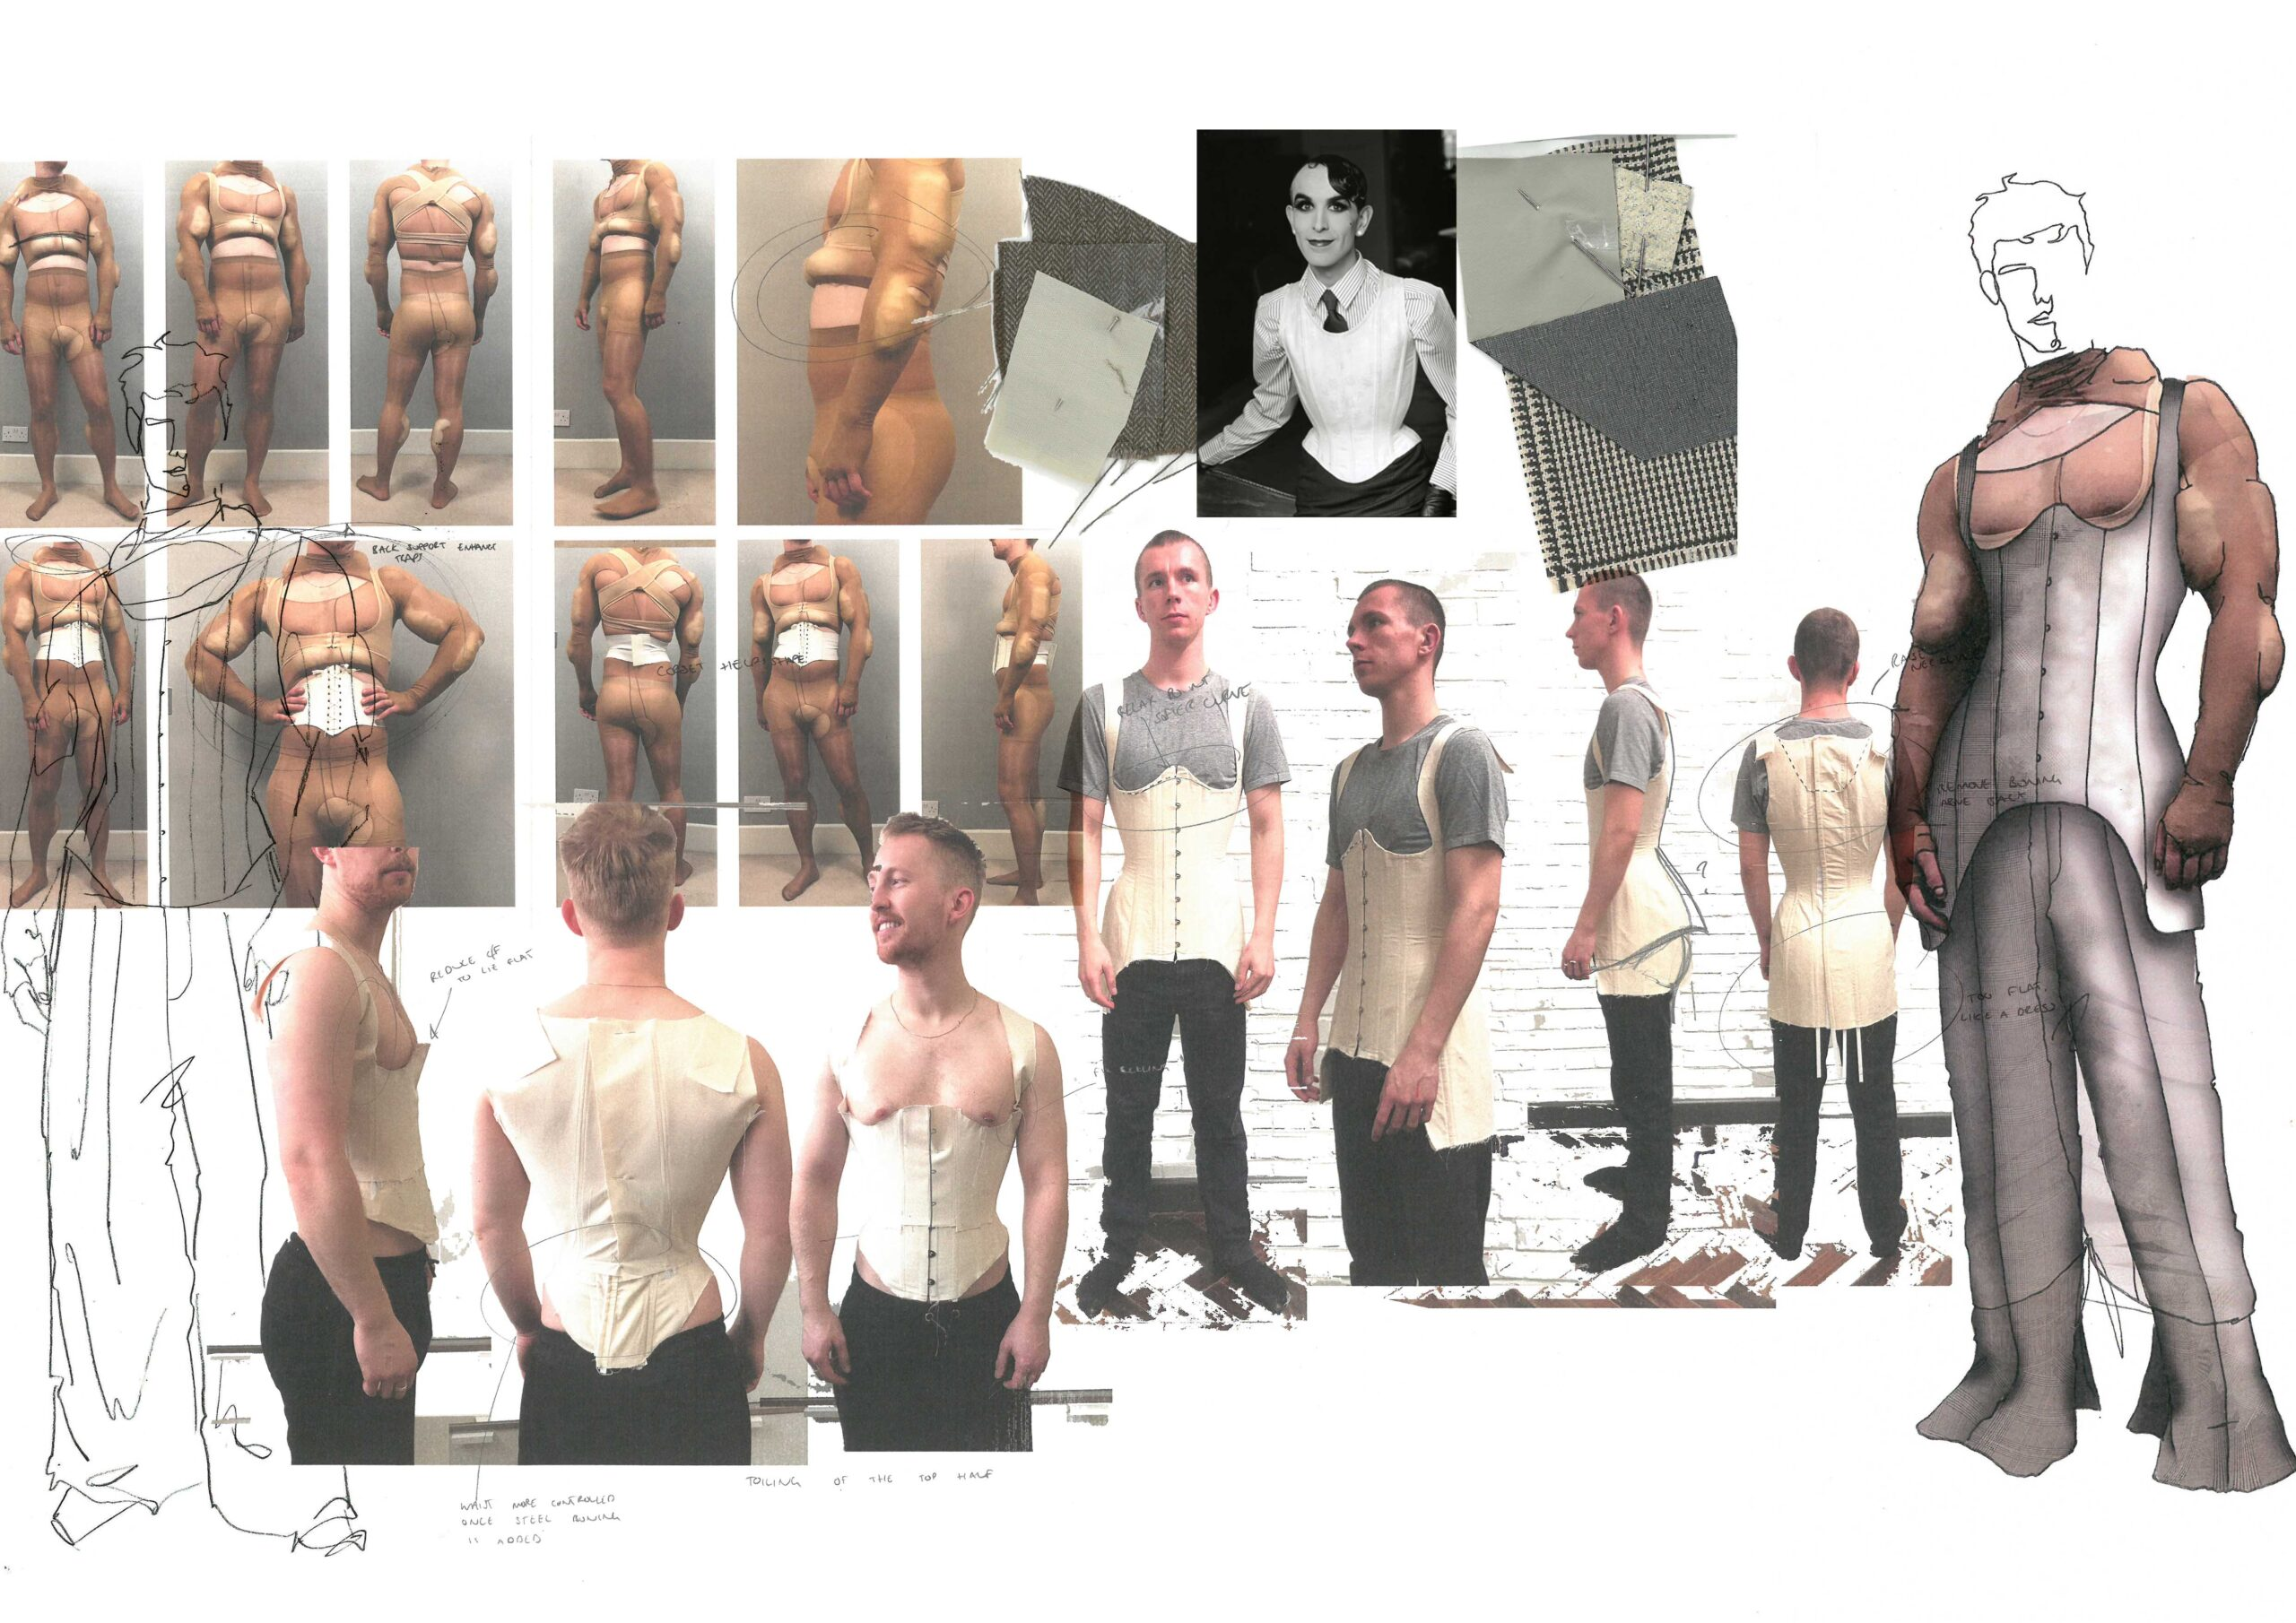 Joe Pearson presents Five Archetypal Men in One Collection